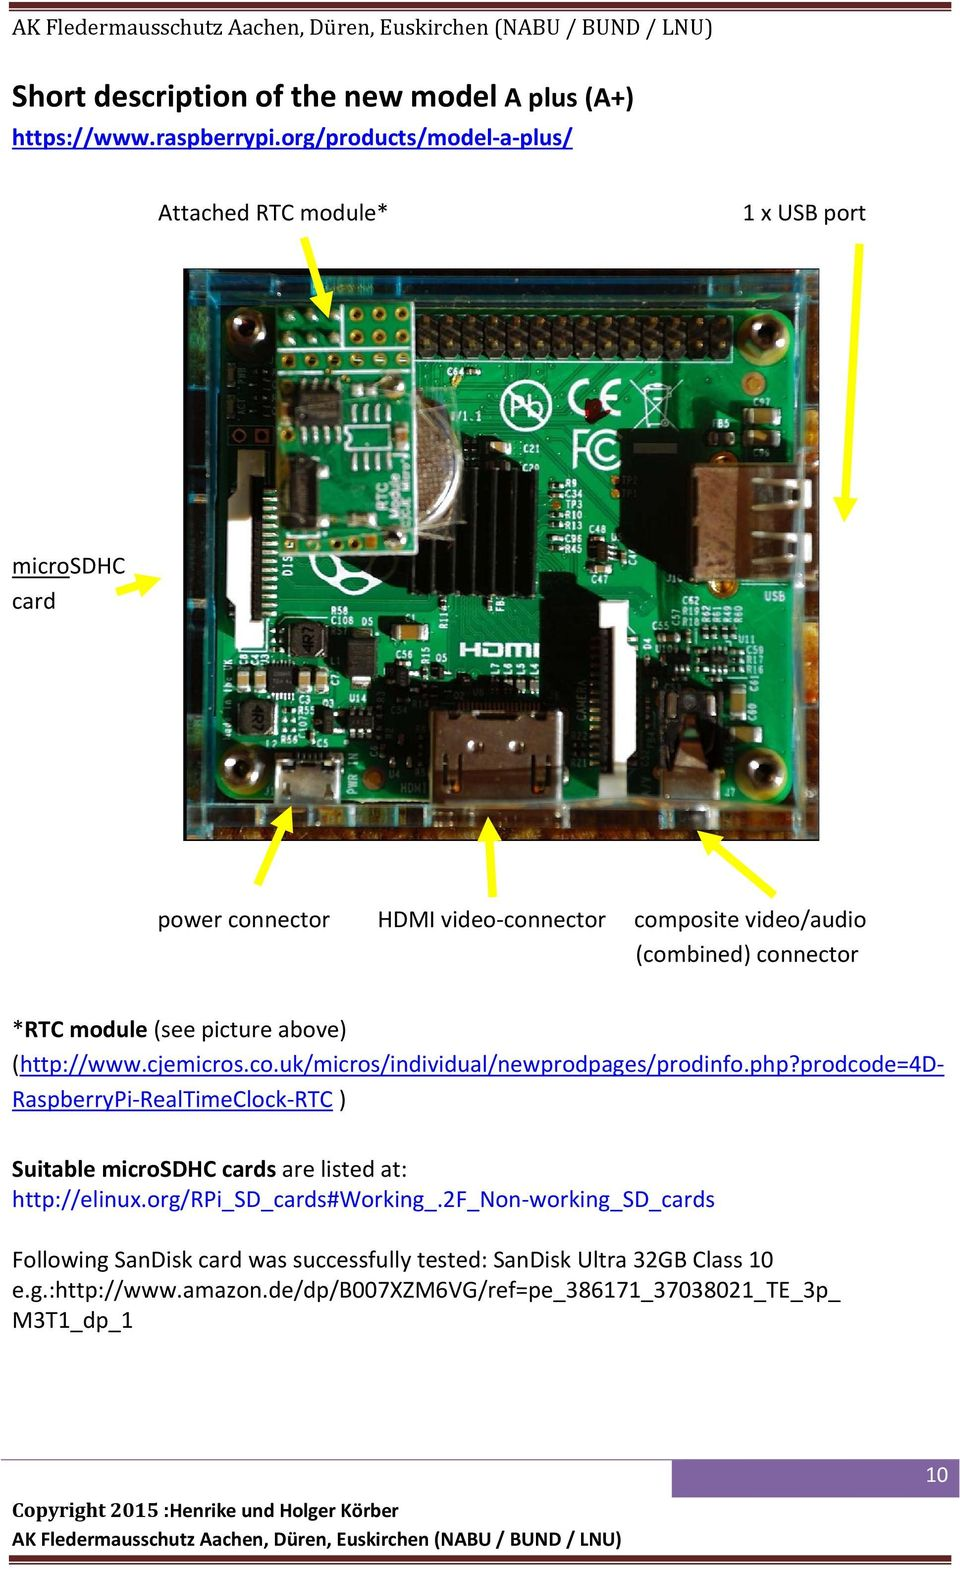 *RTC module (see picture above) (http://www.cjemicros.co.uk/micros/individual/newprodpages/prodinfo.php?